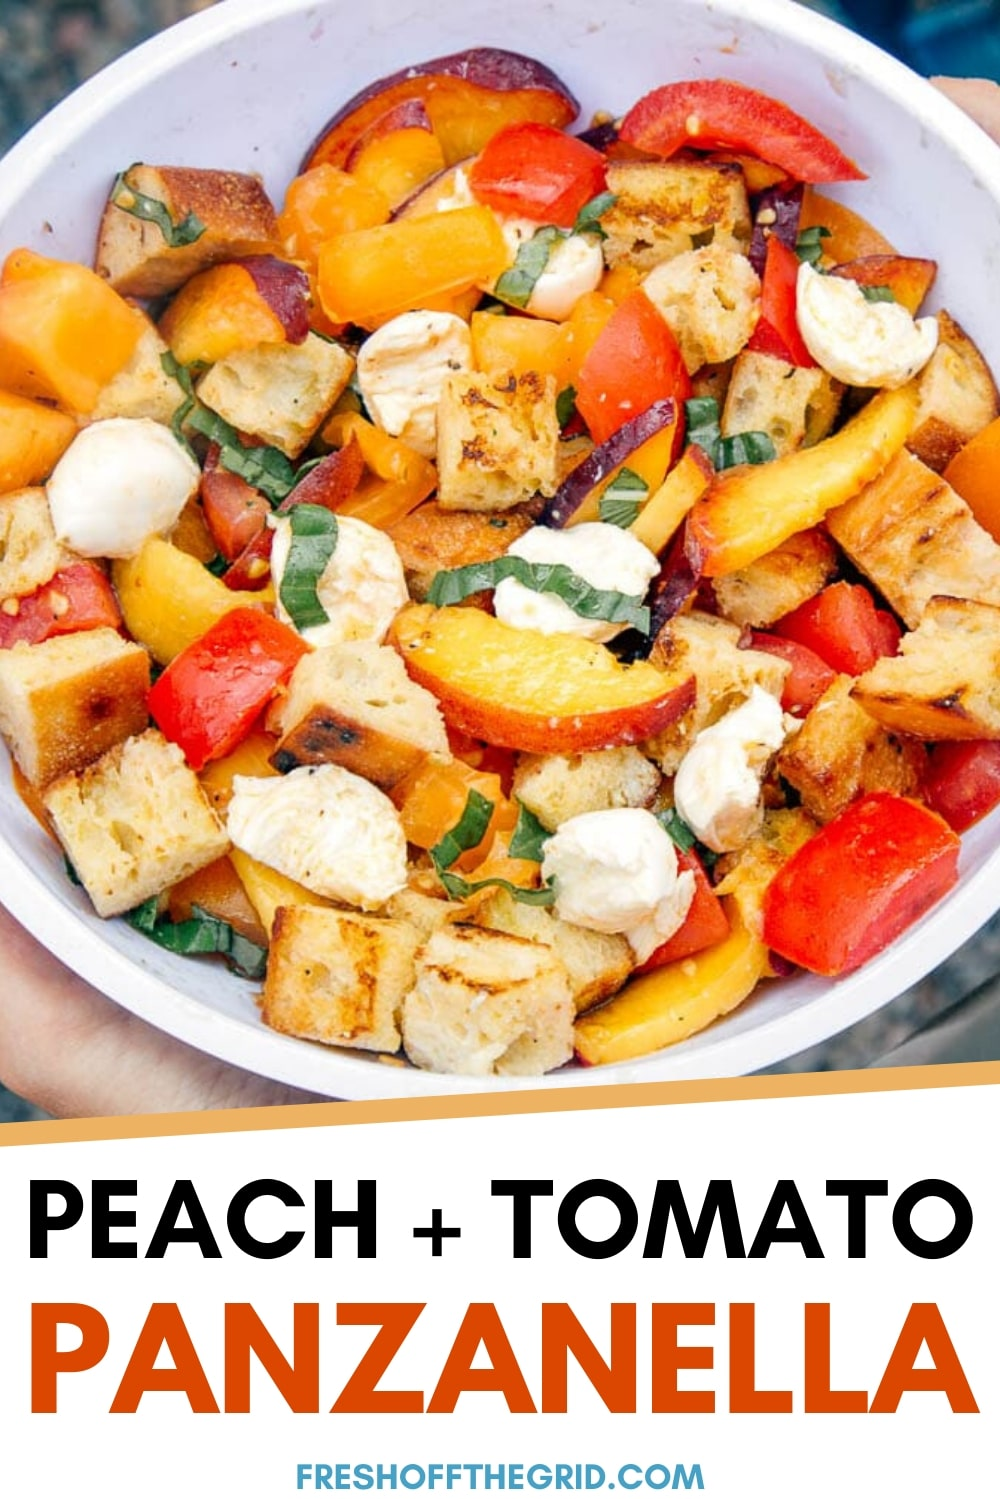 This panzanella bread salad is like the greatest hits album of summer flavors. Fresh tomatoes, basil mozzarella, peaches all tossed together with a white wine vinaigrette. Perfect for camping trips or summer picnics and BBQs! Camping food | Summer entertaining via @freshoffthegrid